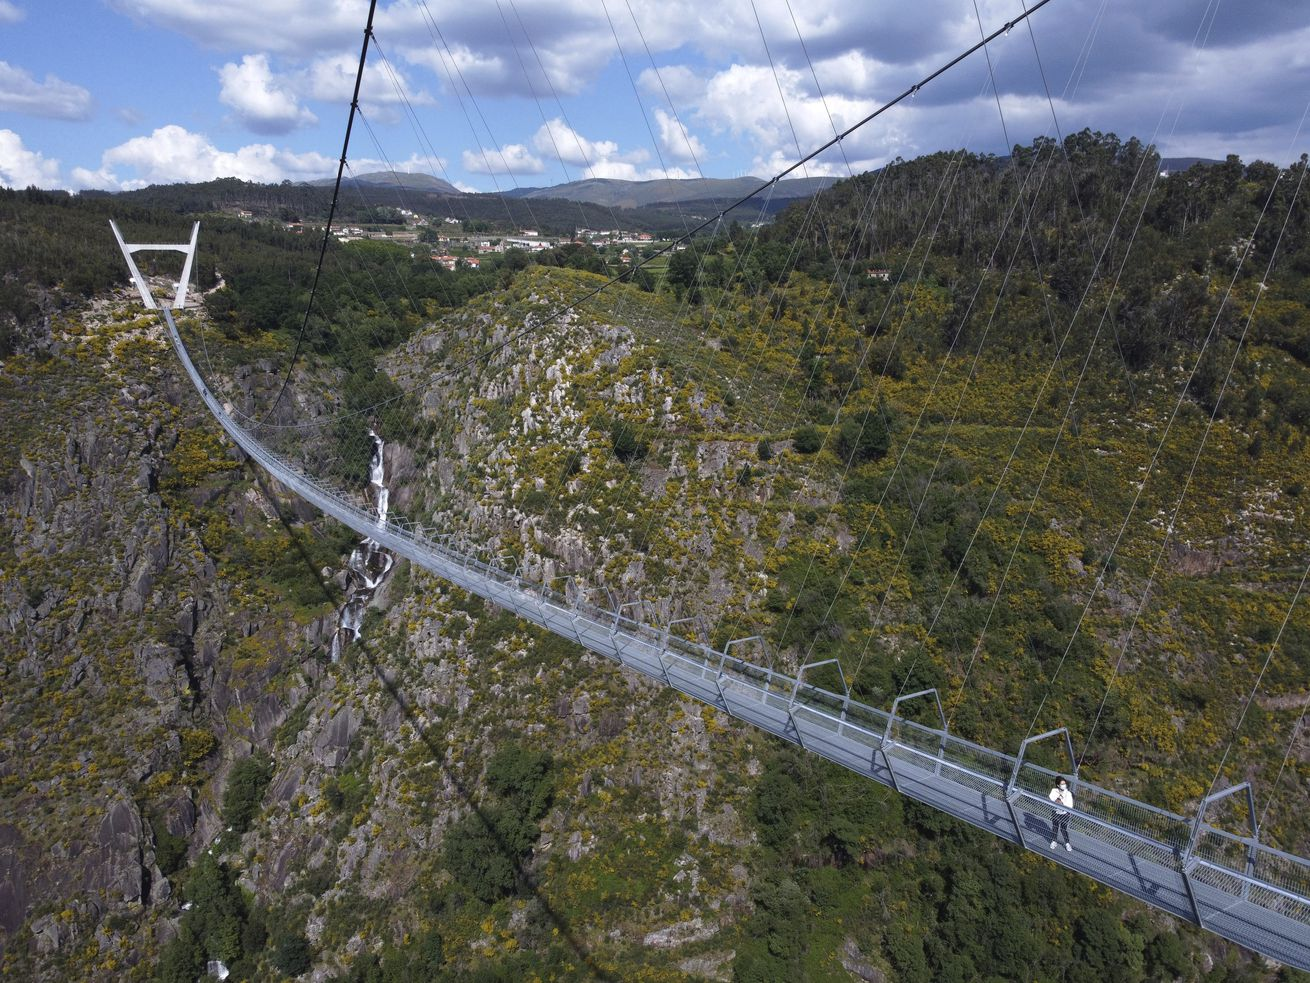 There are three requirements to walk across the newly opened Arouca Bridge in northern Portugal: You have to pay the fee. You must be accompanied by a guide. And, preferably, you don't have a fear of heights.